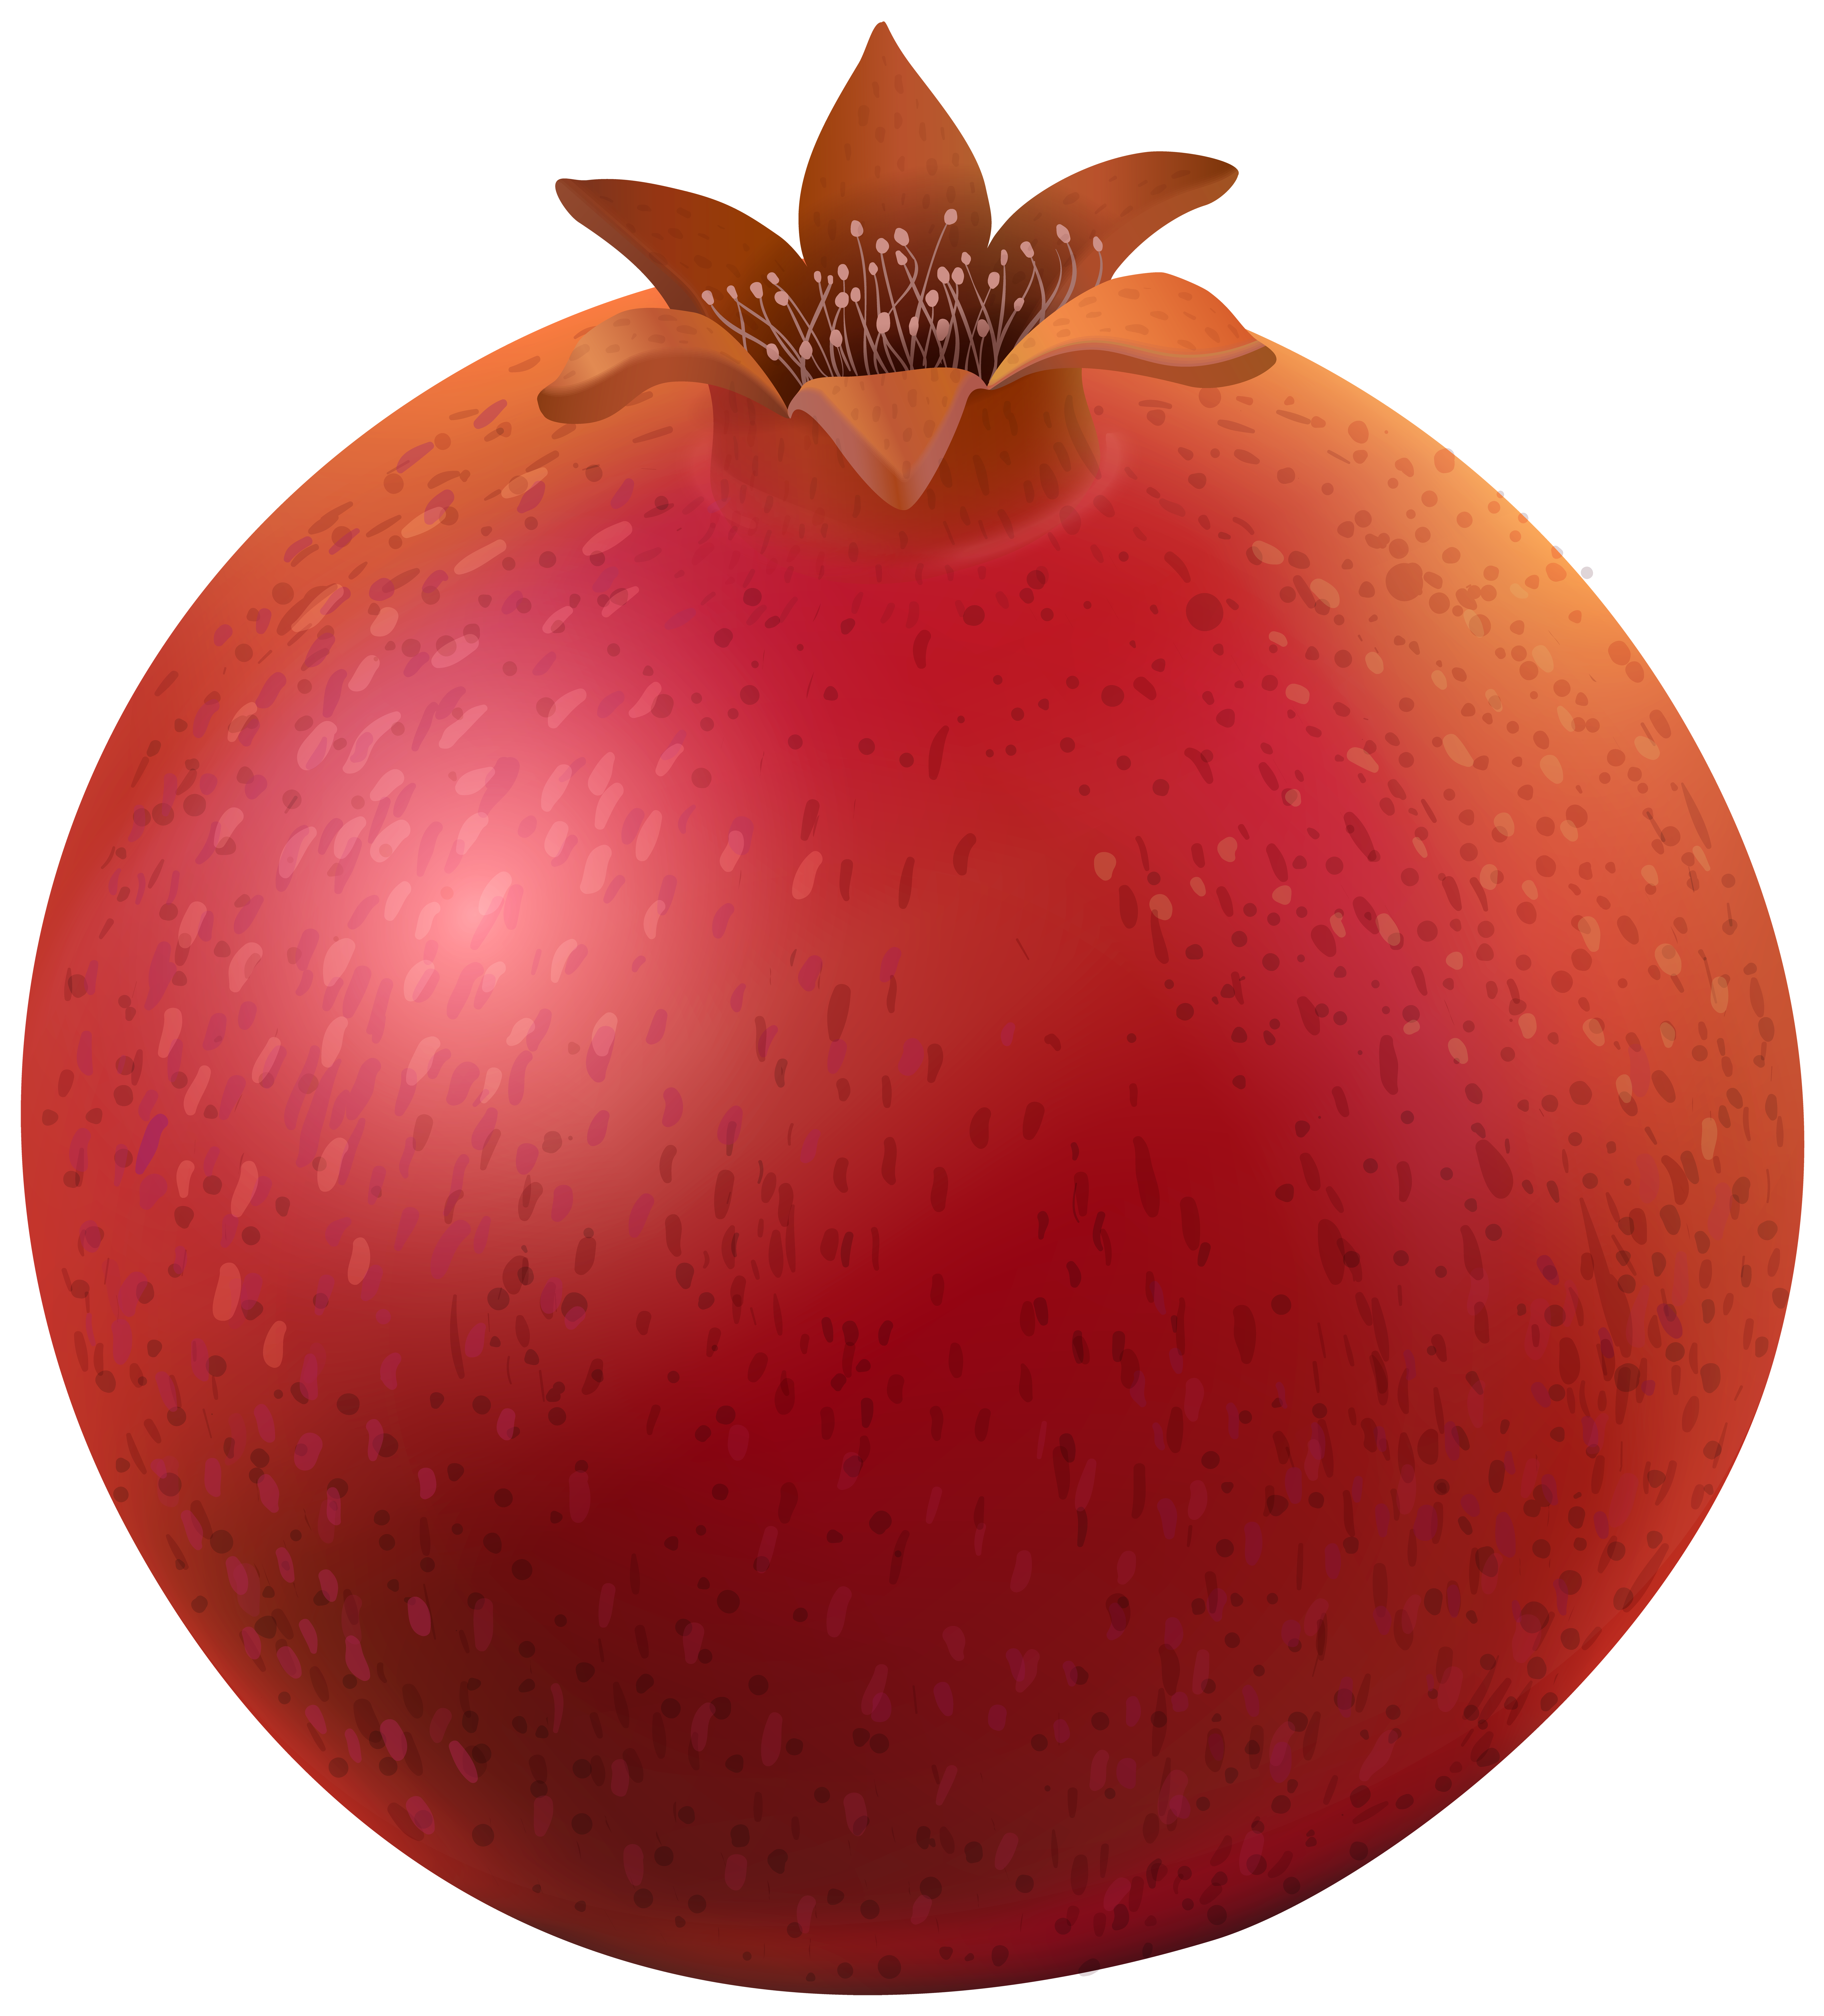 Pomegranate clipart. Png clip art image